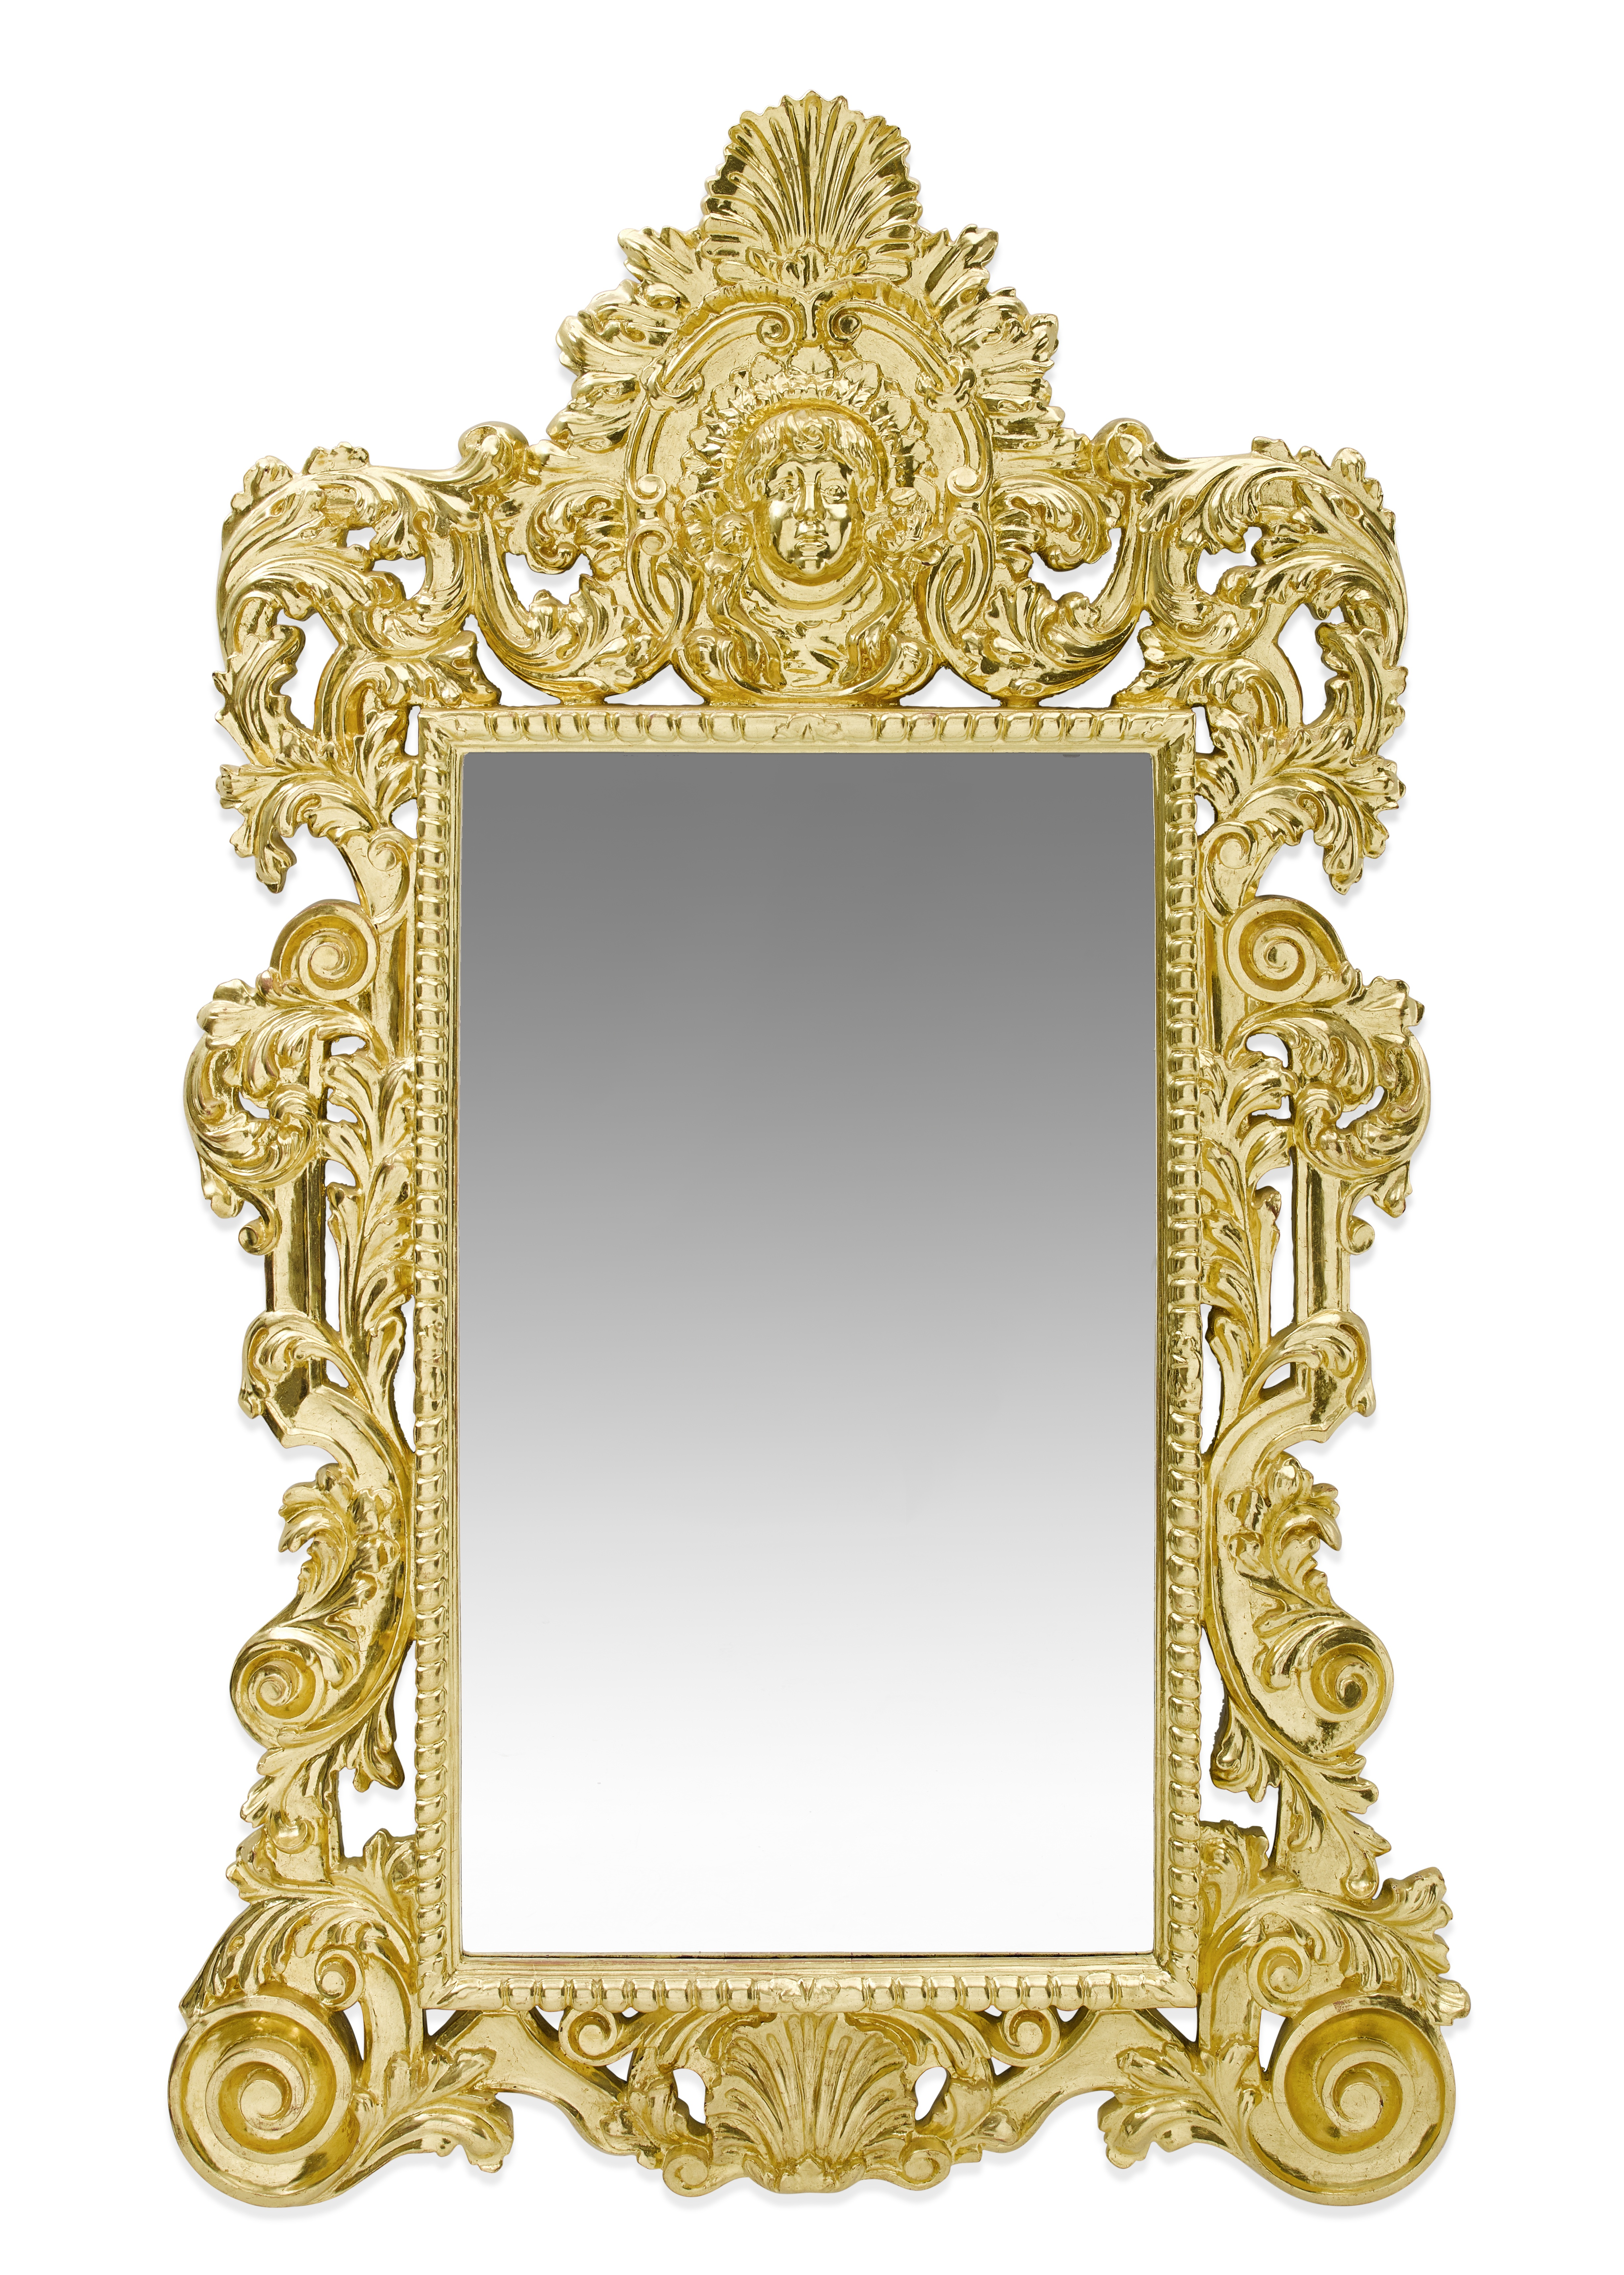 Lot 114 - A Continental Baroque Style Giltwood Mirror 20th century